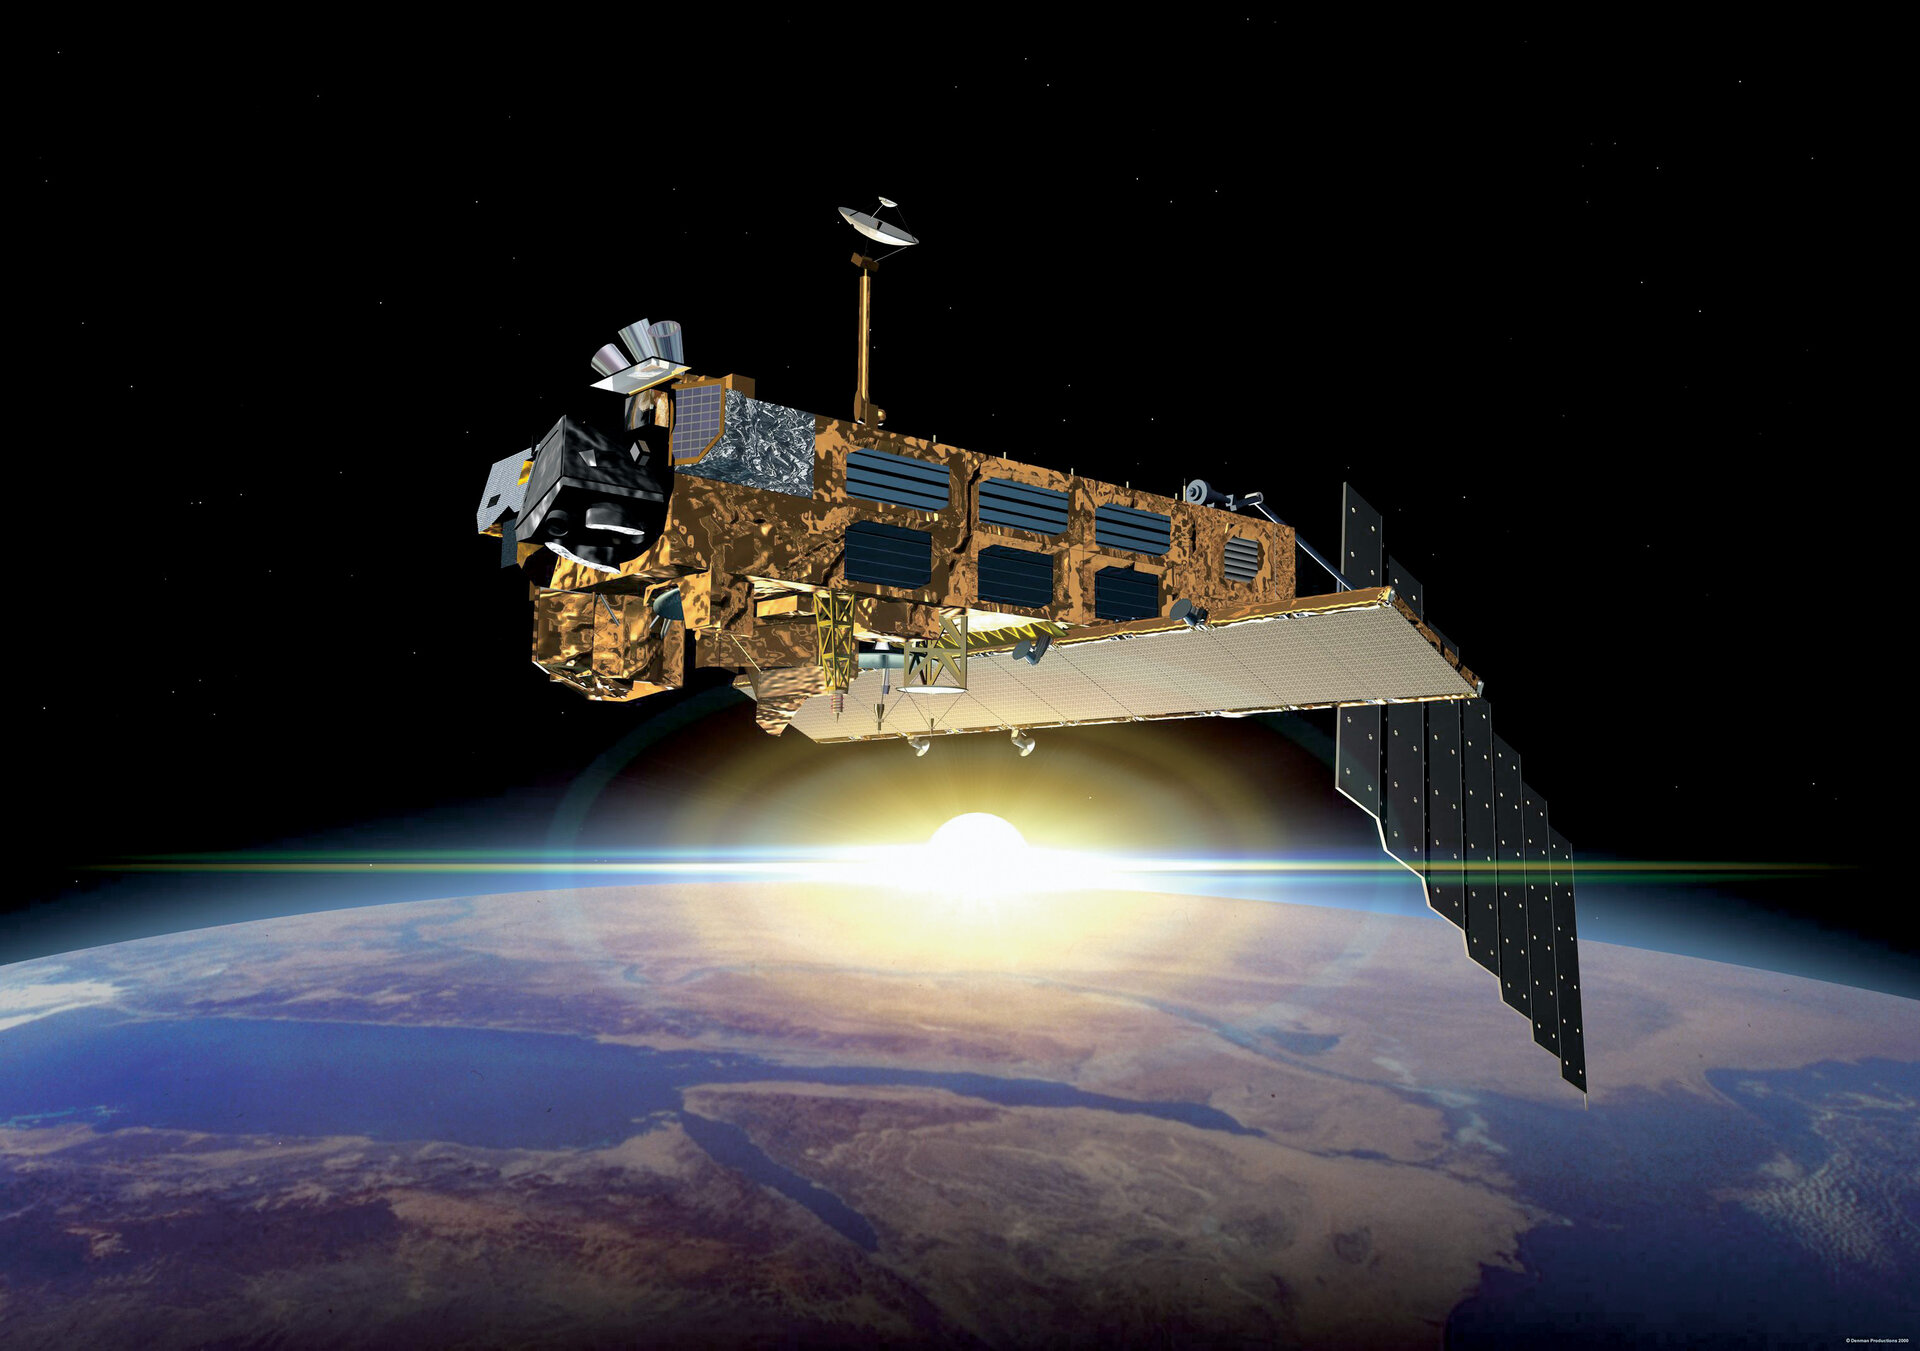 Data from the Envisat satellite was used in the demonstration phase of the project